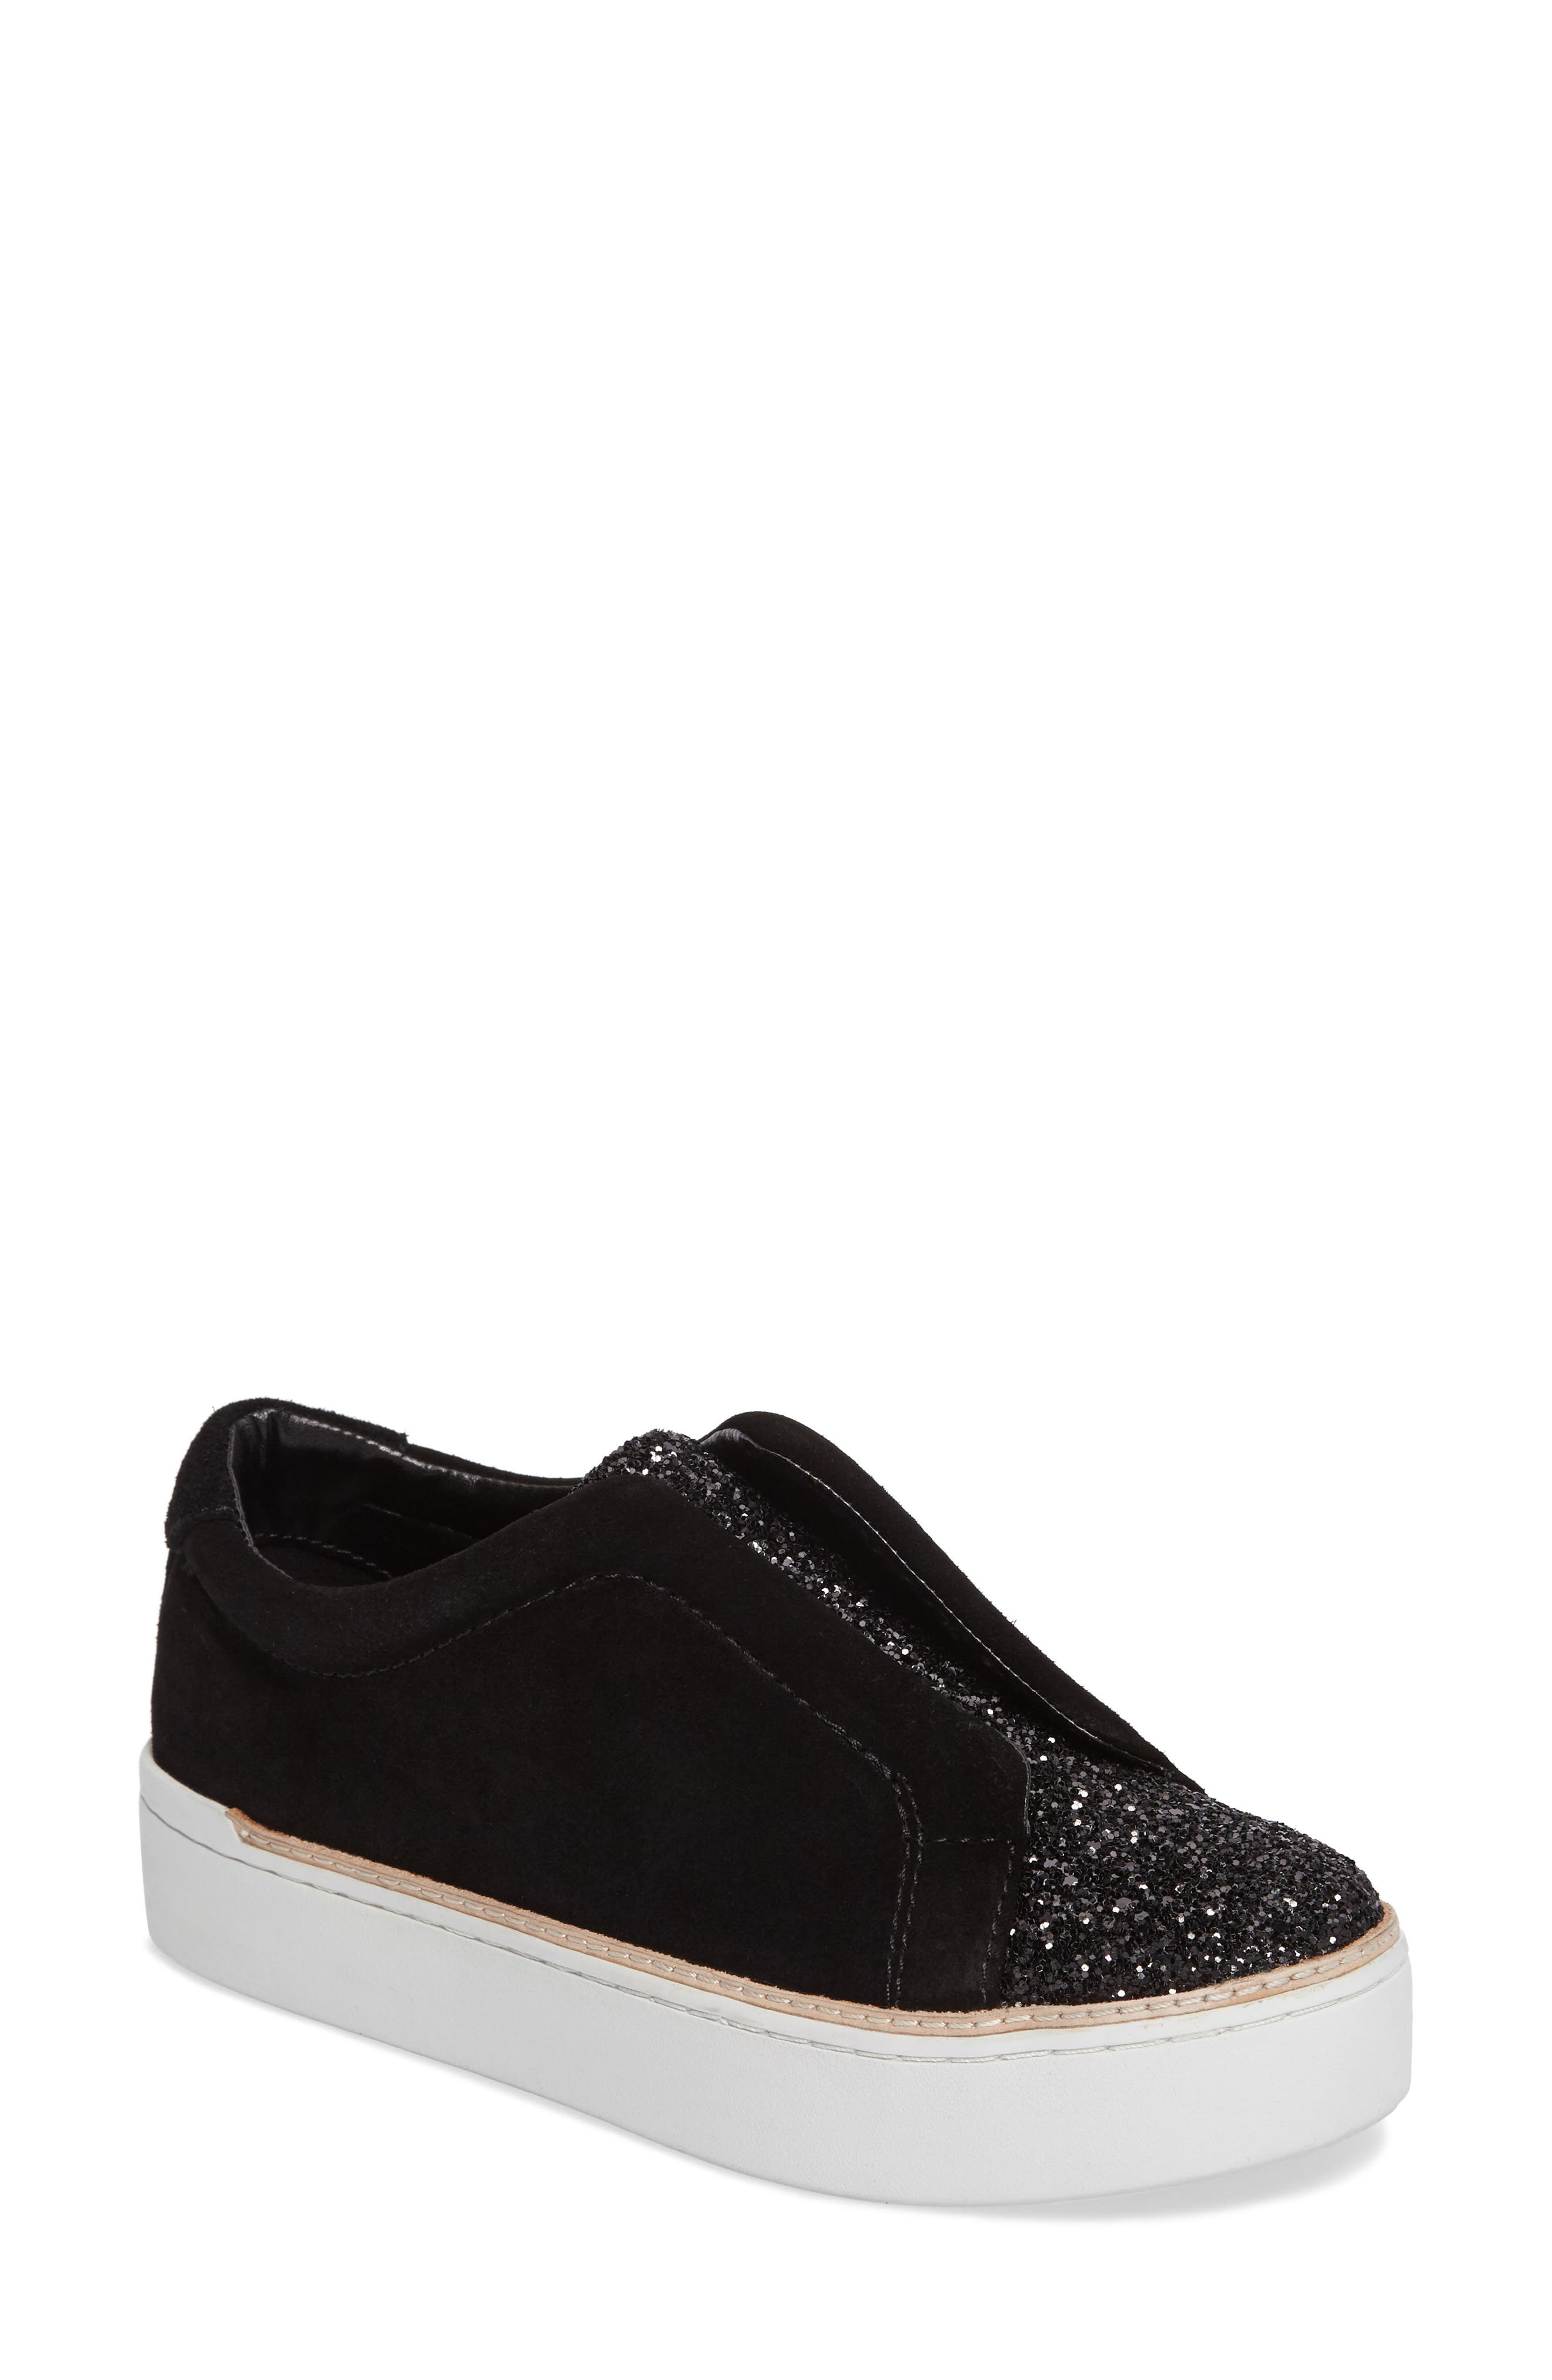 M4D3 Super Slip-On Sneaker,                         Main,                         color, BLACK GLITTER LEATHER